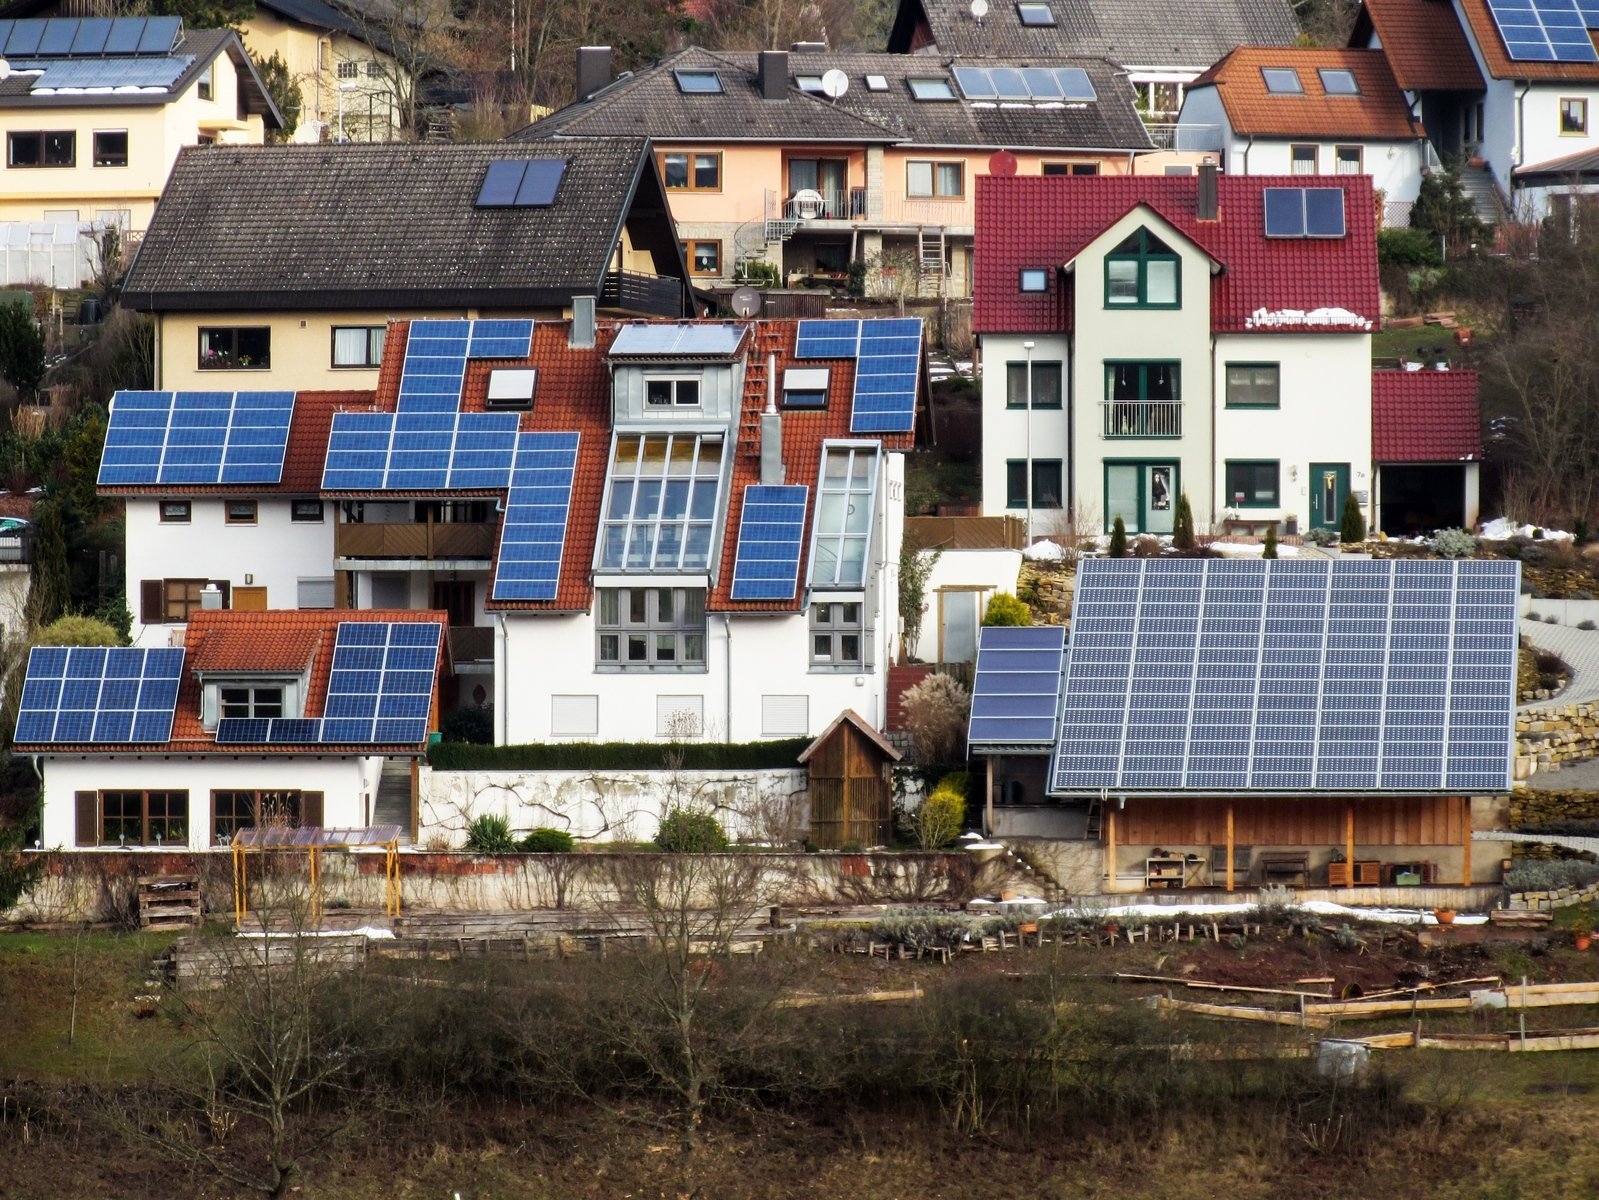 roofs-with-solar-panels-1202305.jpg